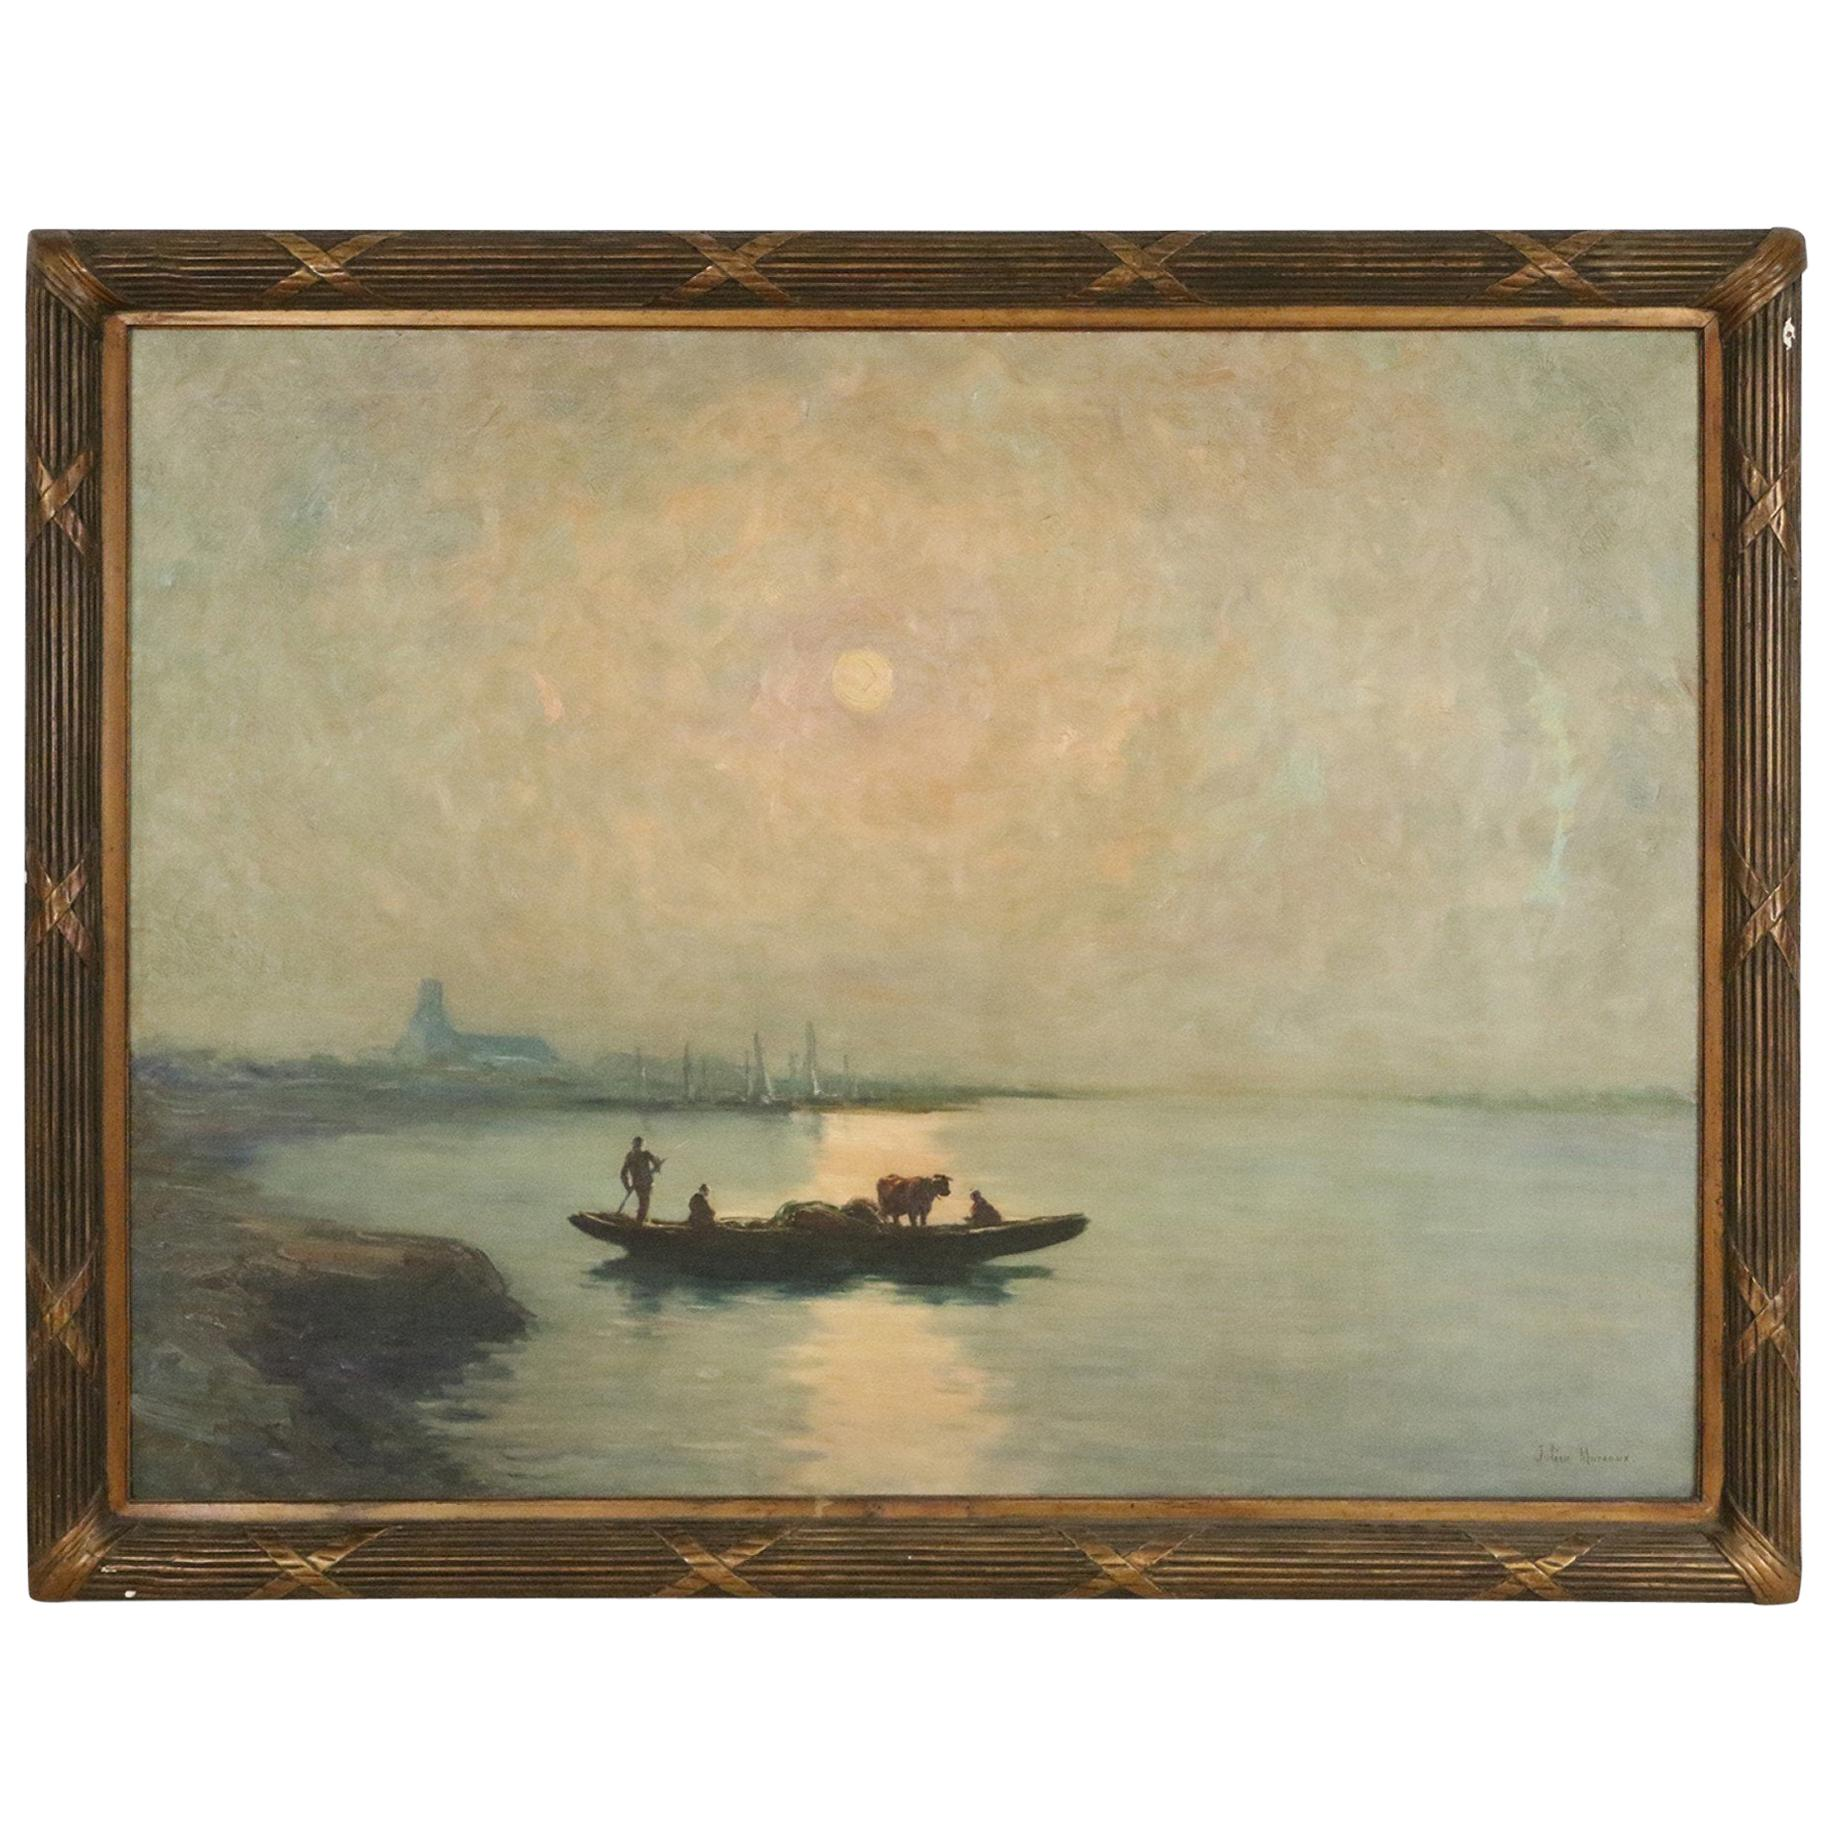 19th Century Signed French Painting of a Seascape in a Giltwood Frame